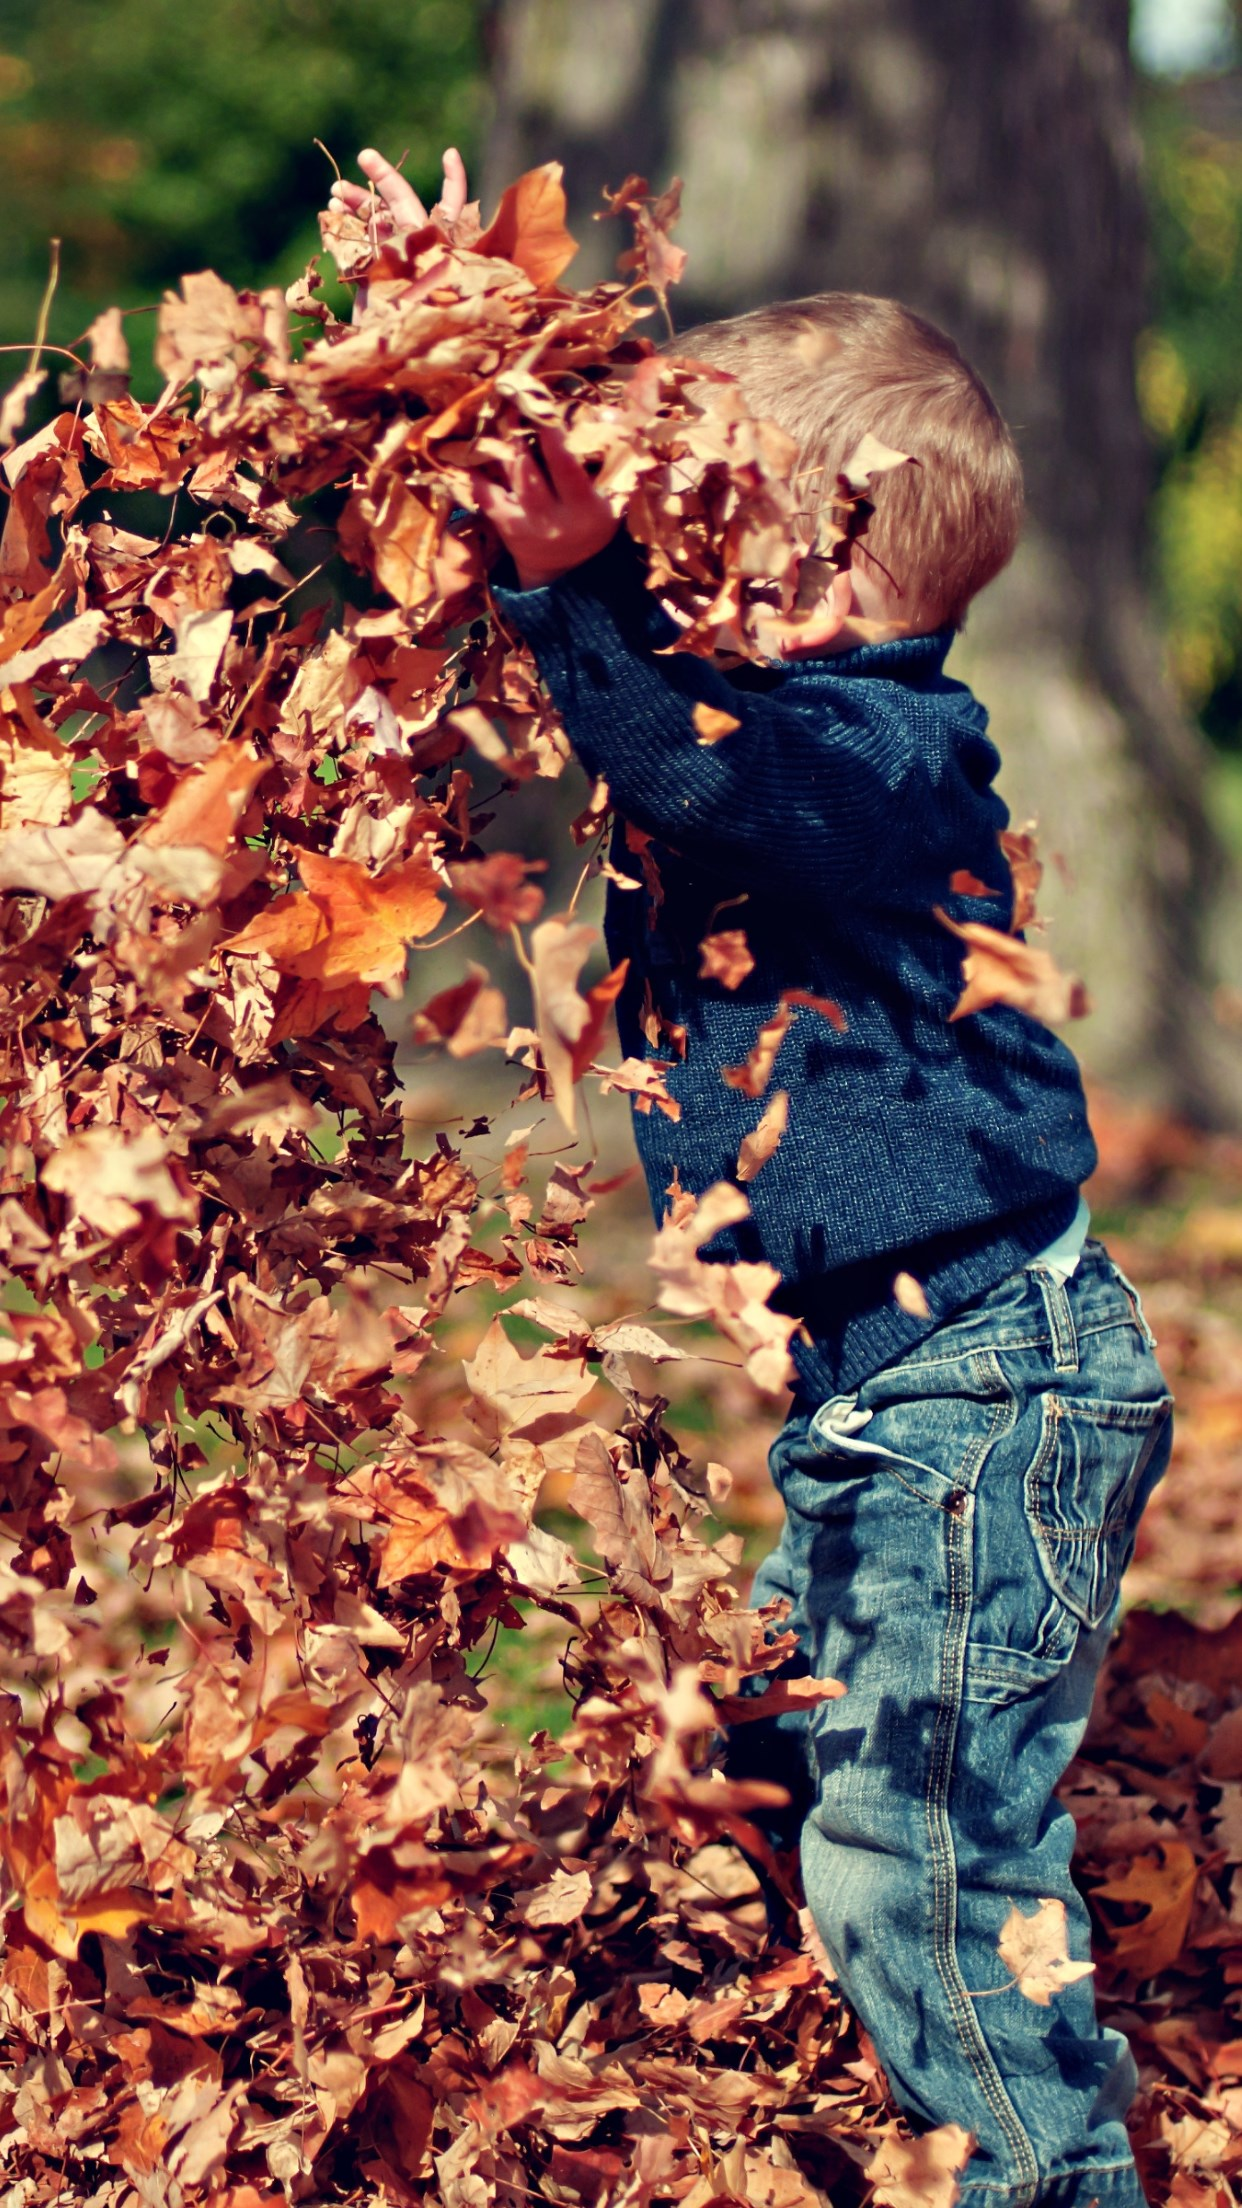 The child is playing with leaves wallpaper 1242x2208